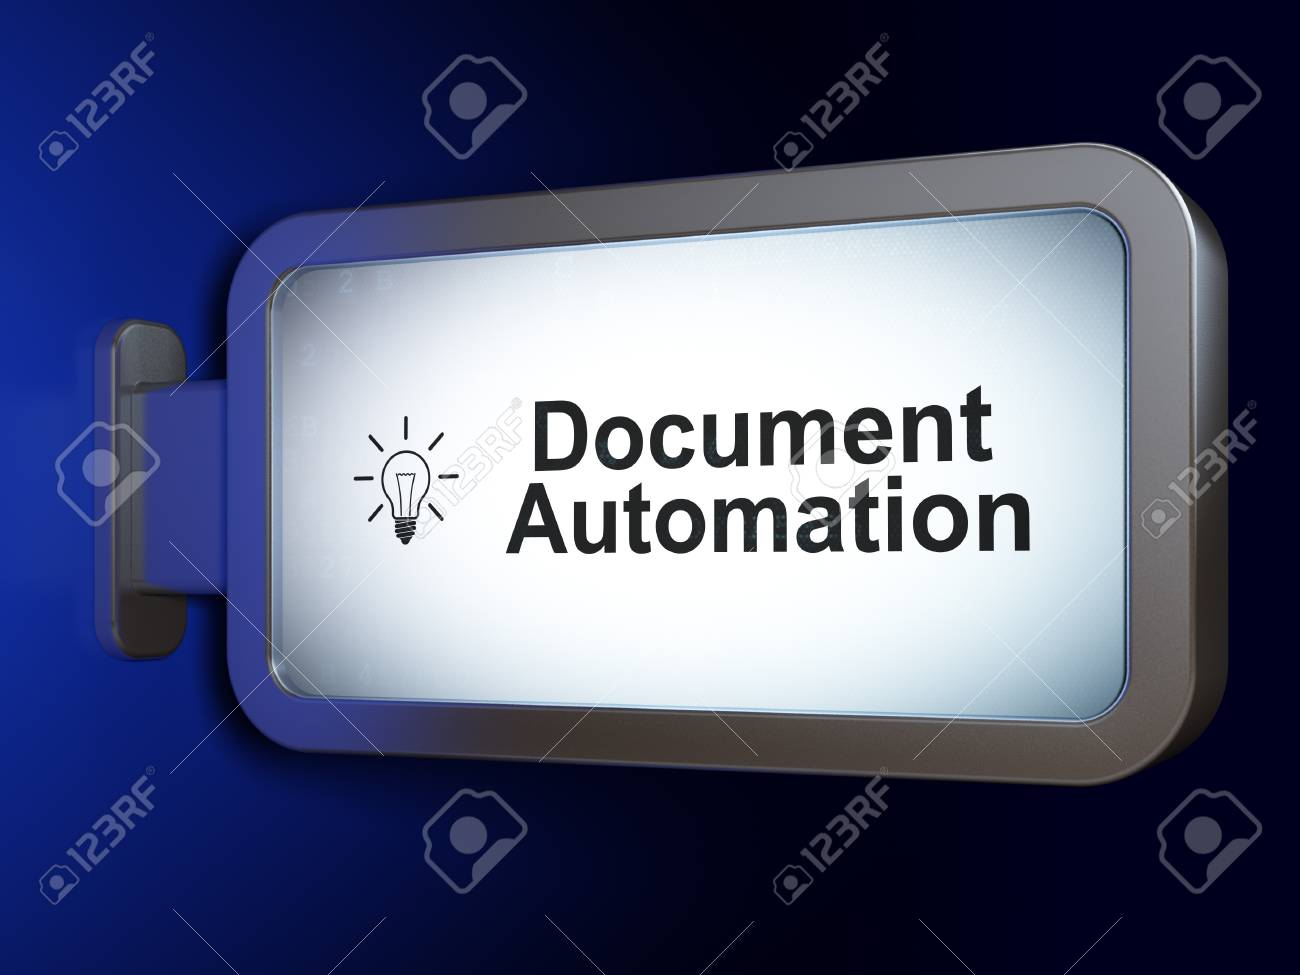 Light Automation Finance Concept Document Automation And Light Bulb On Advertising